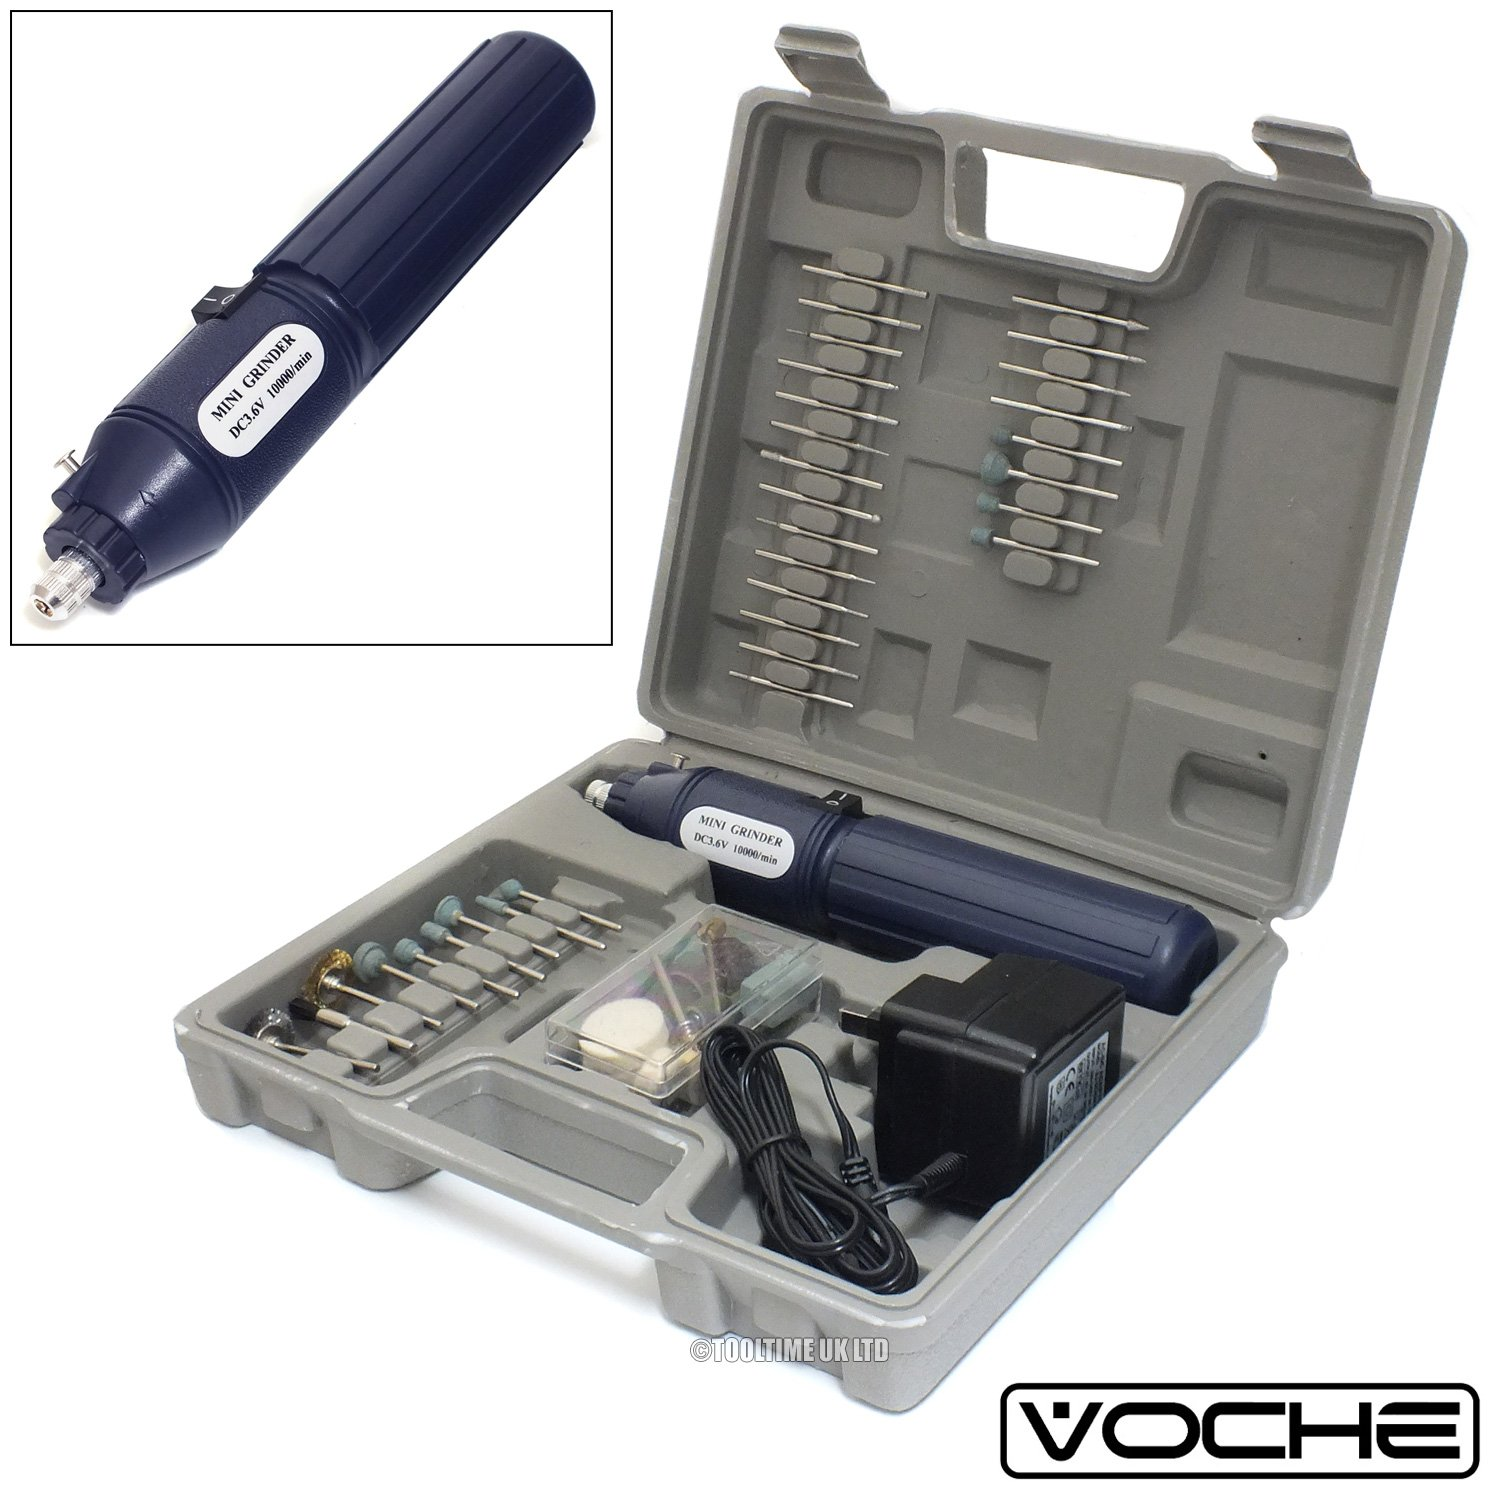 Voche® Cordless Rechargeable Mini Rotary Dremel Style Drill with 100 Accessories and Case Voche®